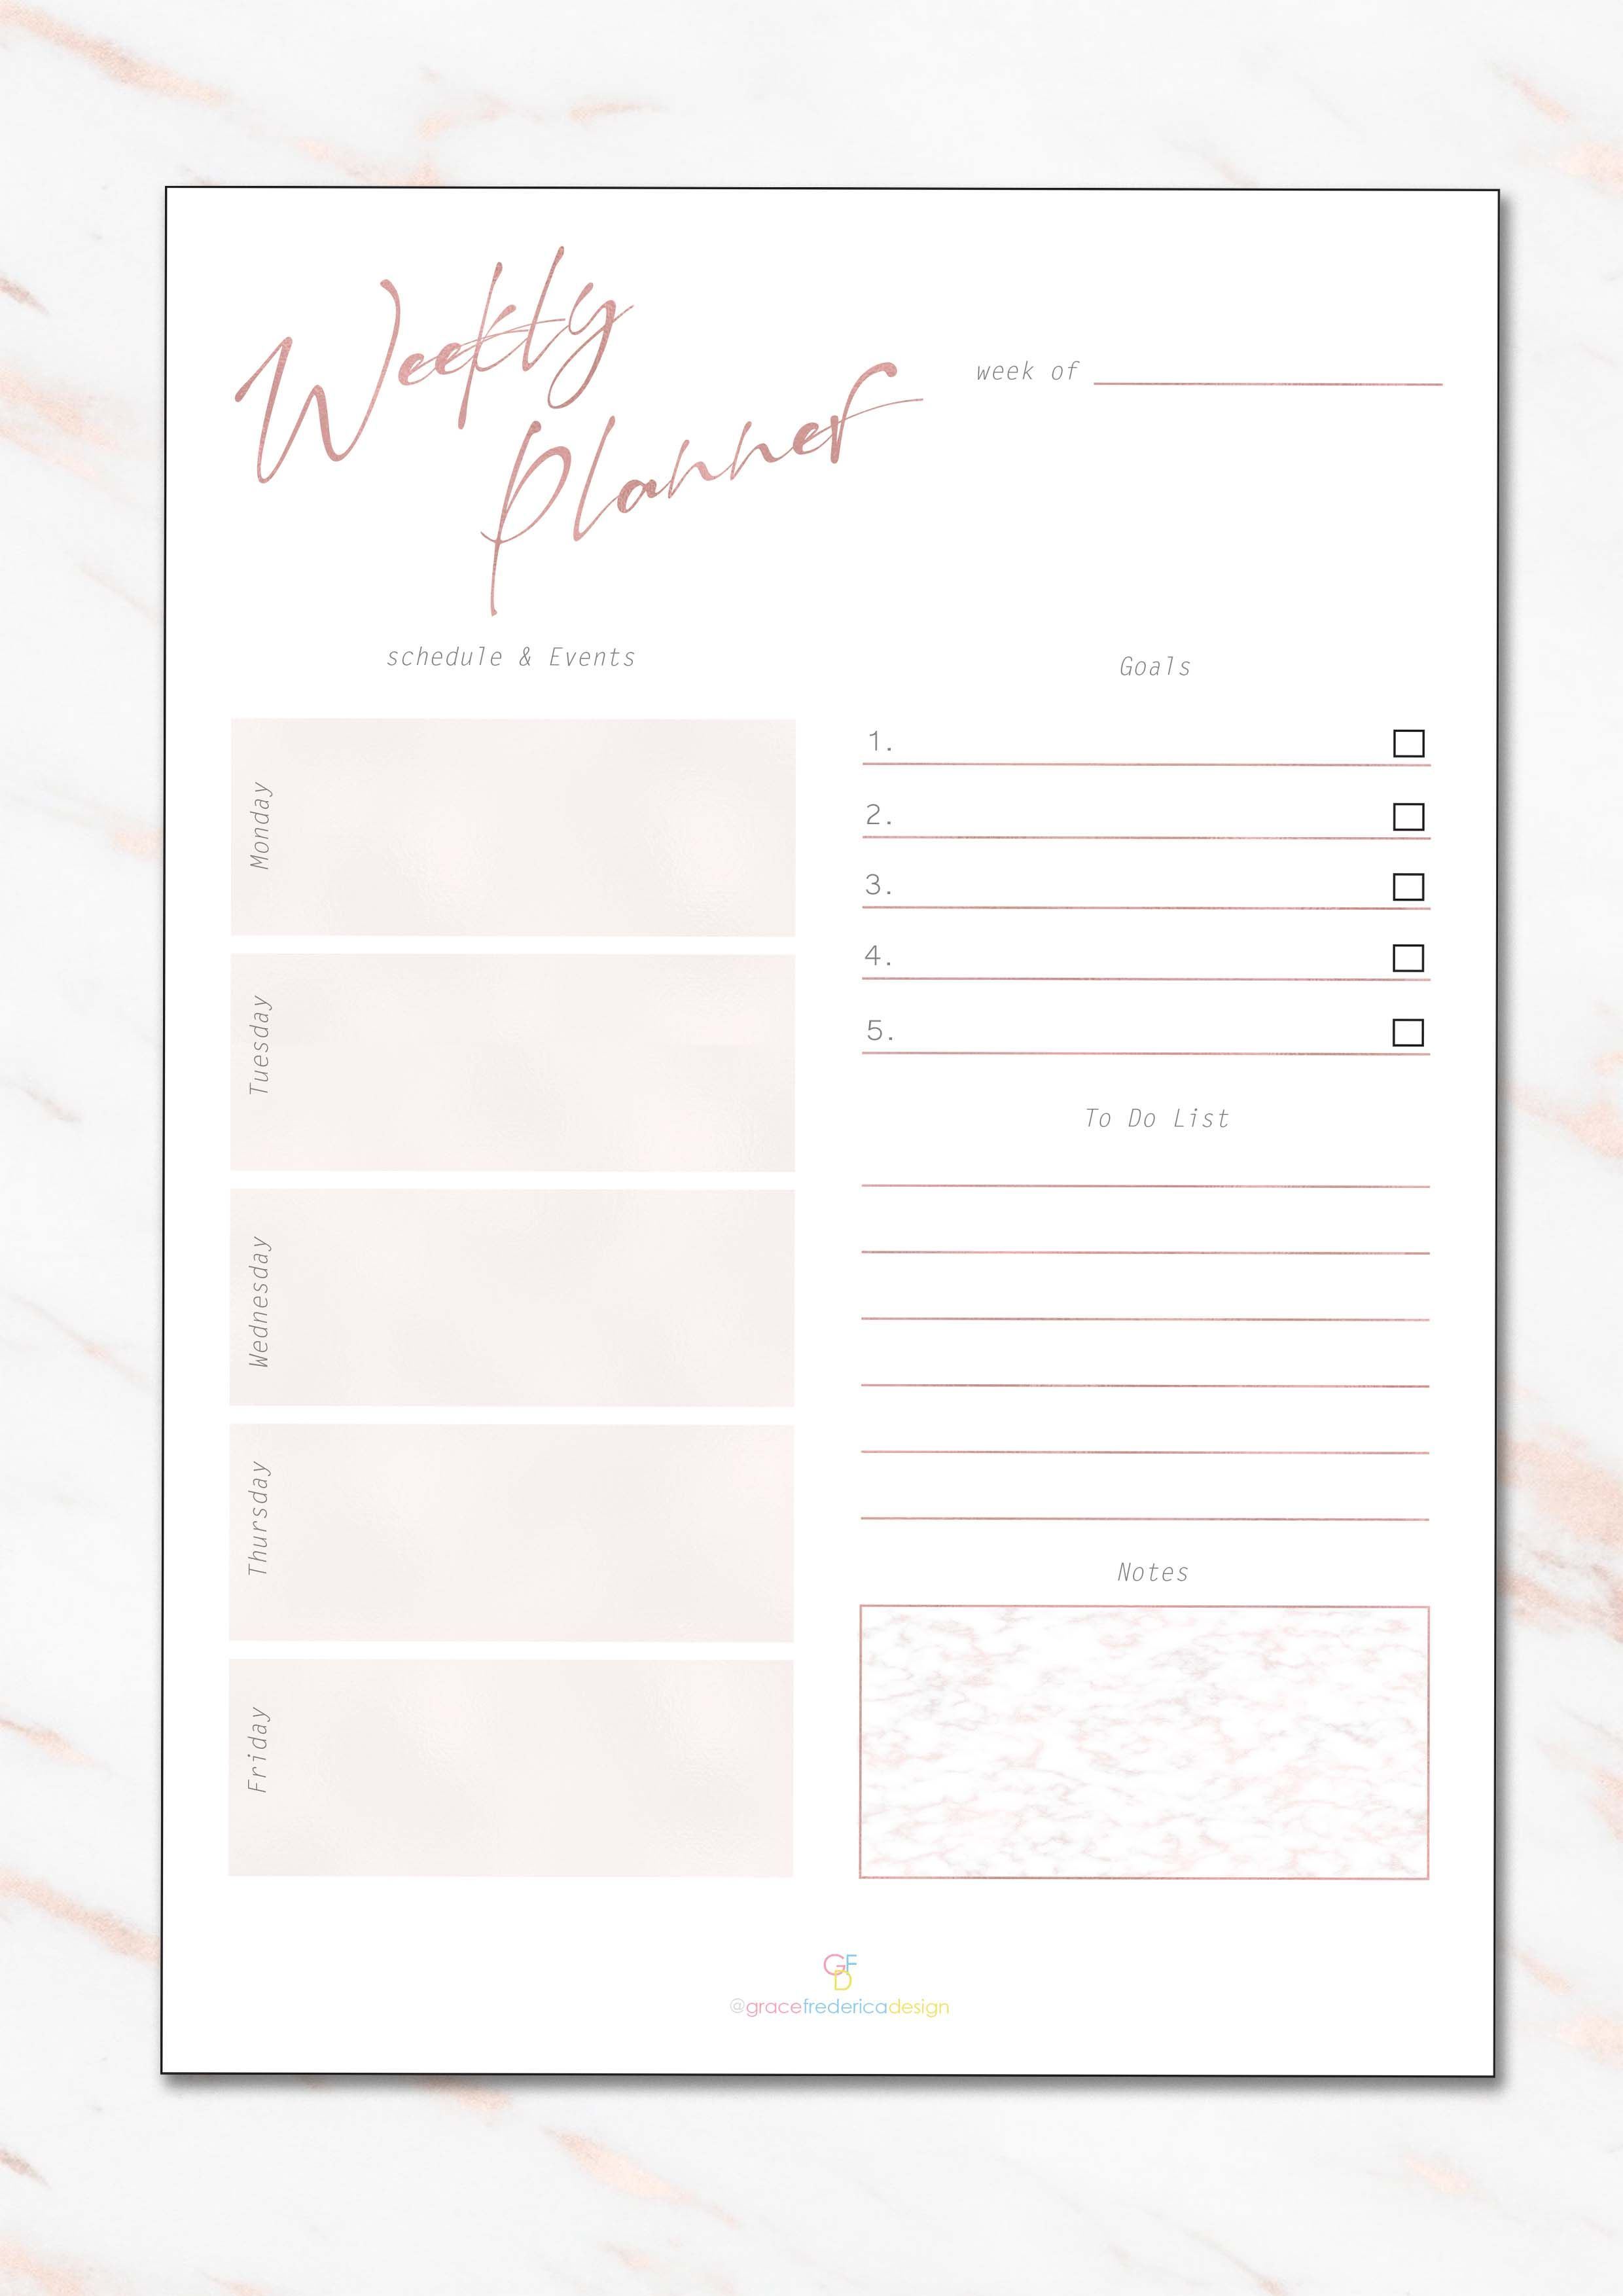 Weekly Planner Rose Gold Marble Planner Set Hd Pdf Download A4 A5